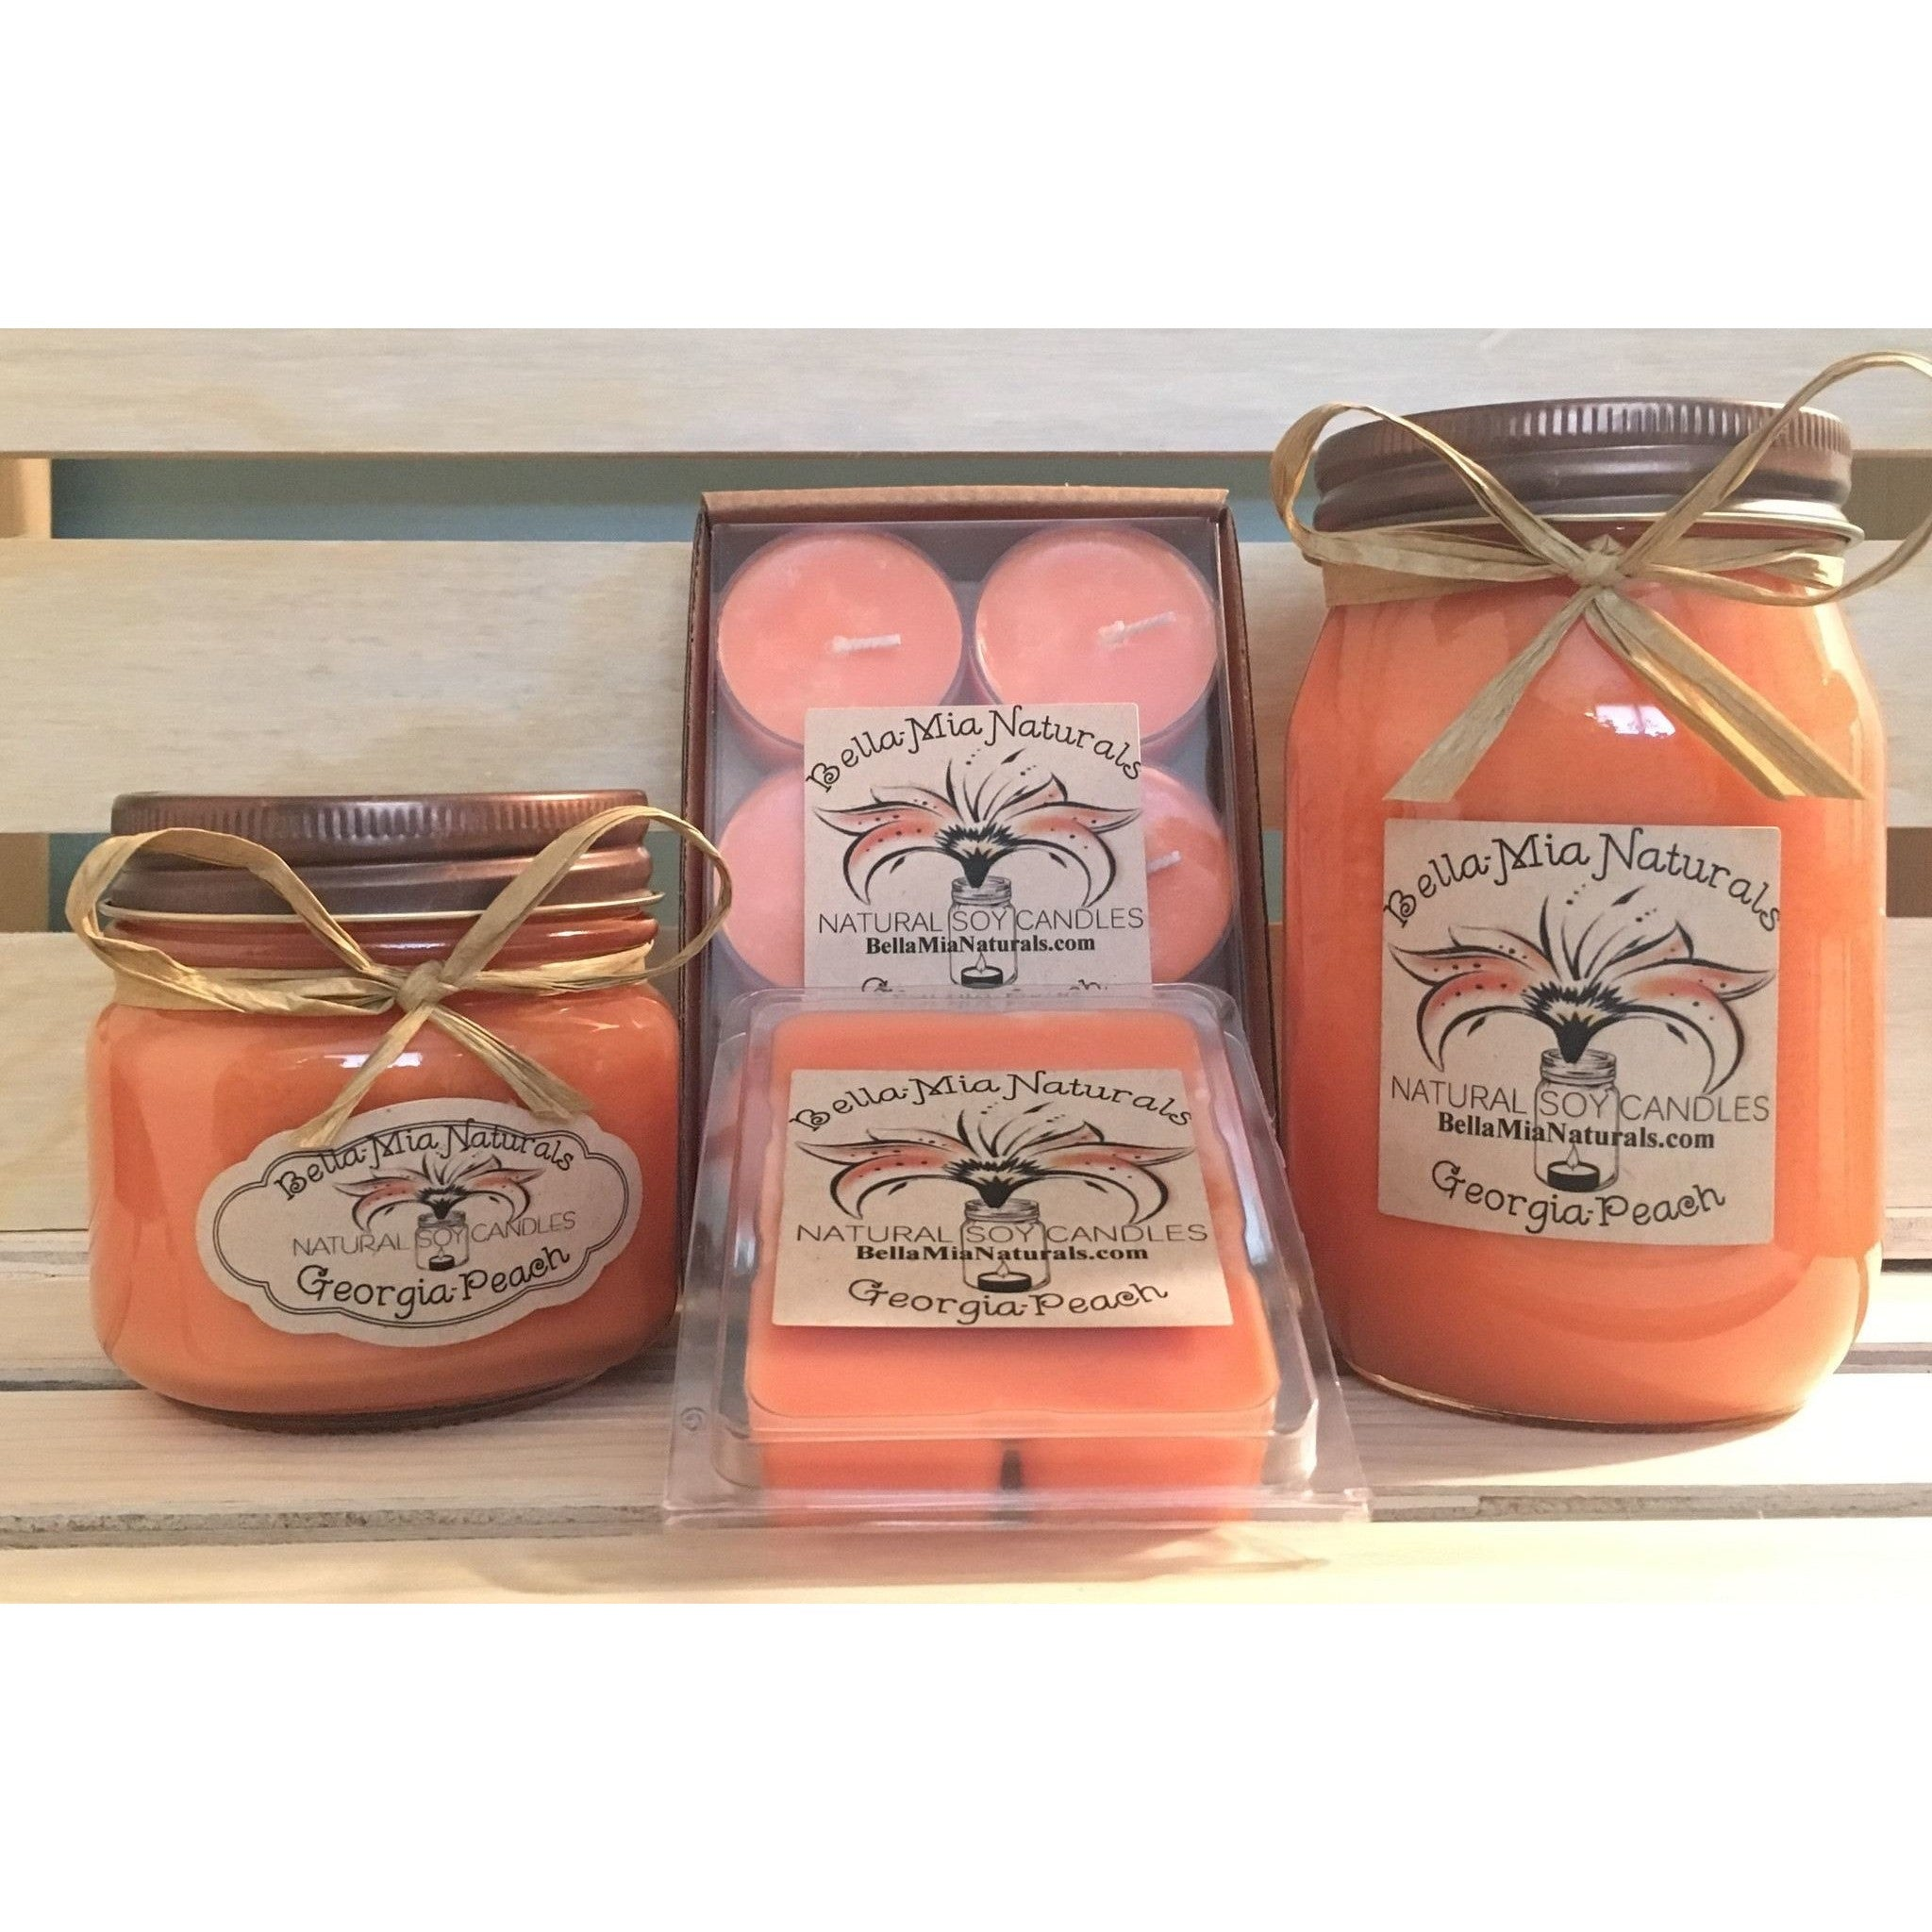 Georgia-Peach Natural Hand Poured Soy Candles -  - Bella-Mia Naturals All Natural Soy Candles & Lip Balms - 1